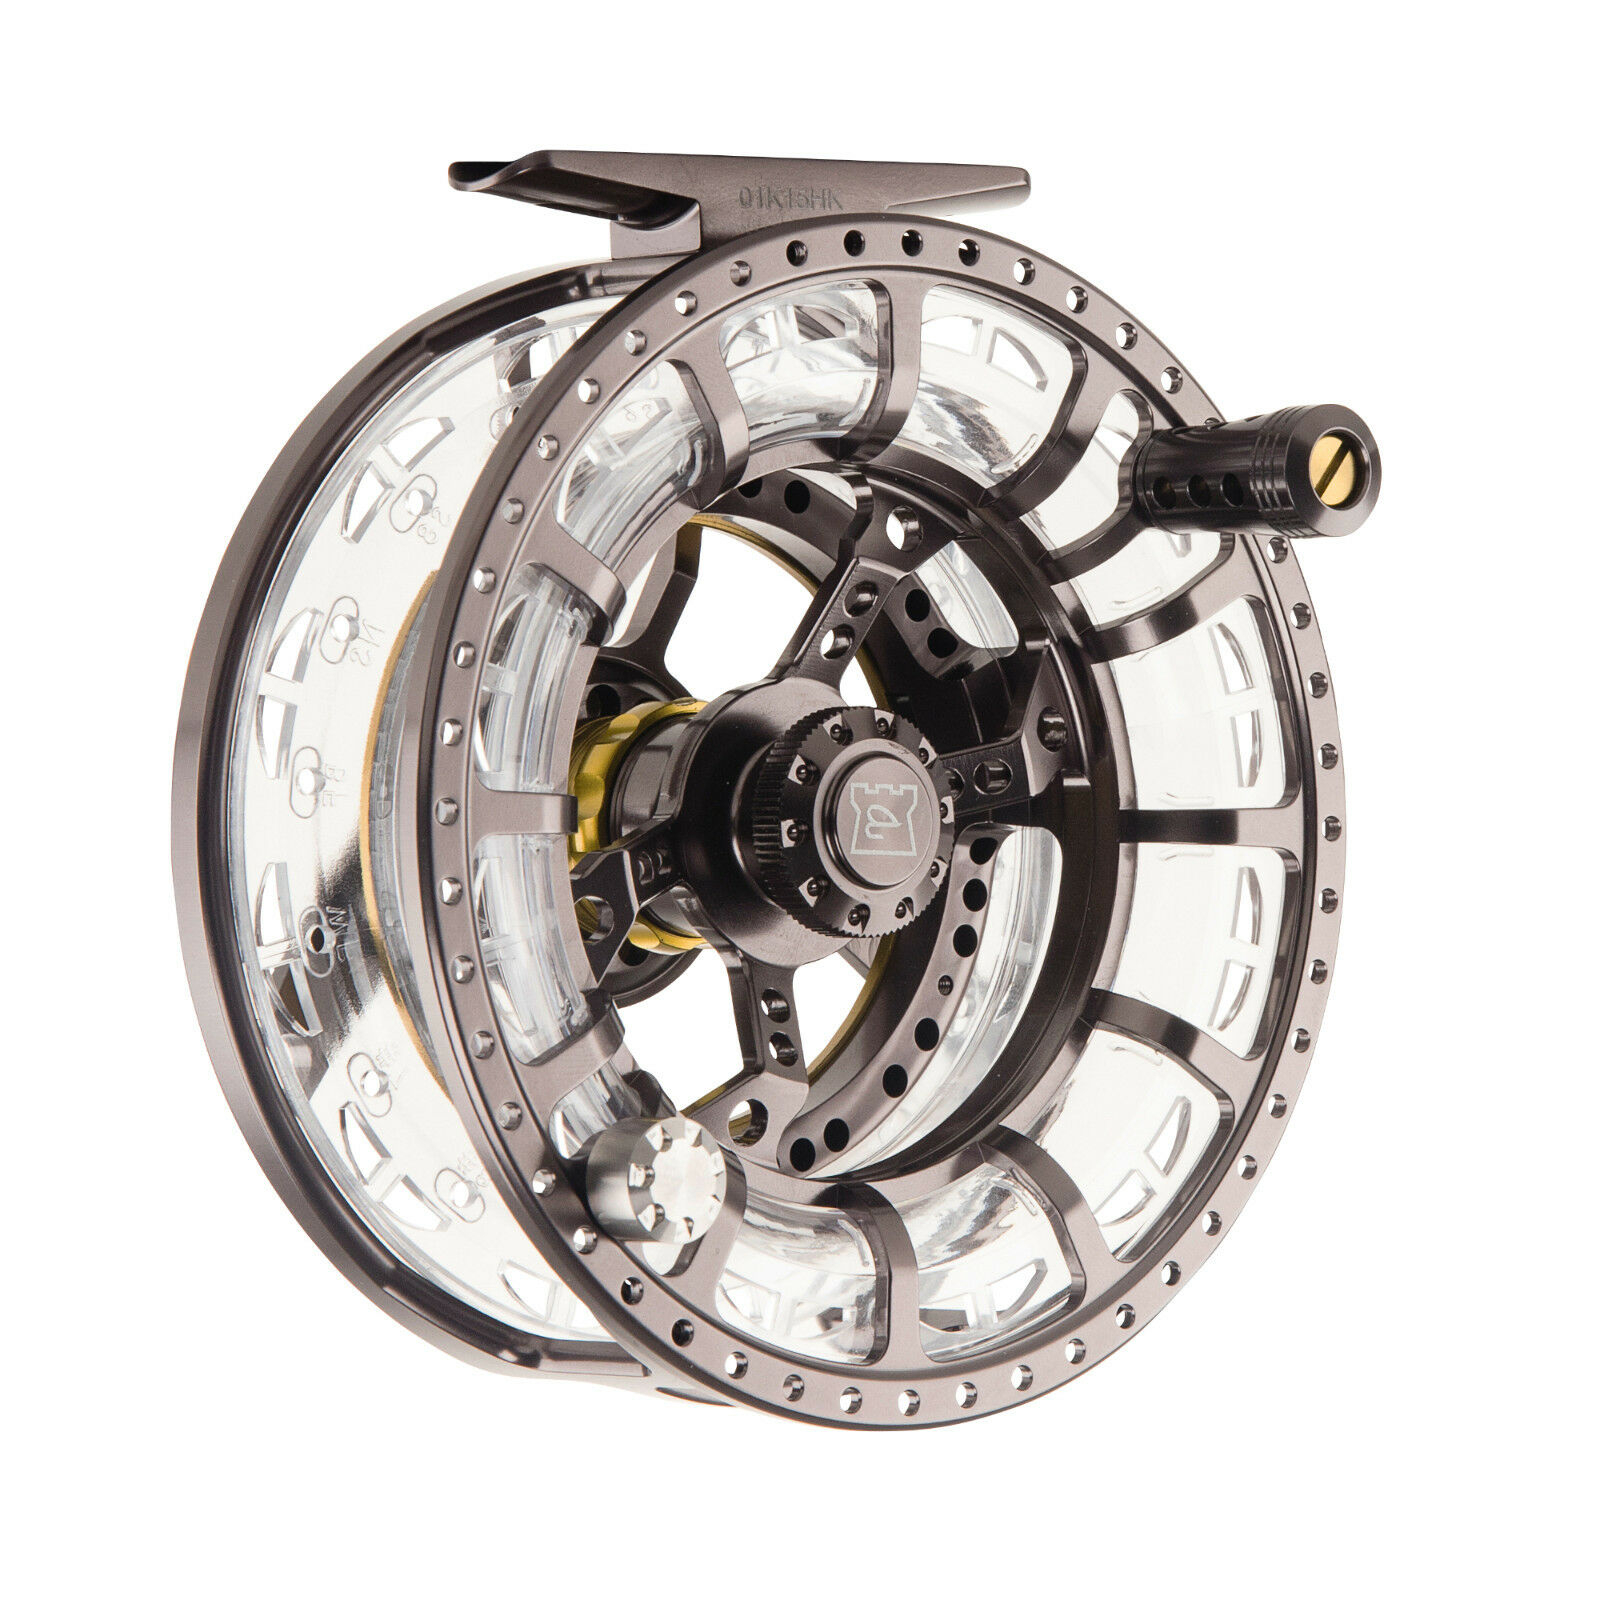 Hardy Ultralite ASR  Casette Fly Reel  best prices and freshest styles